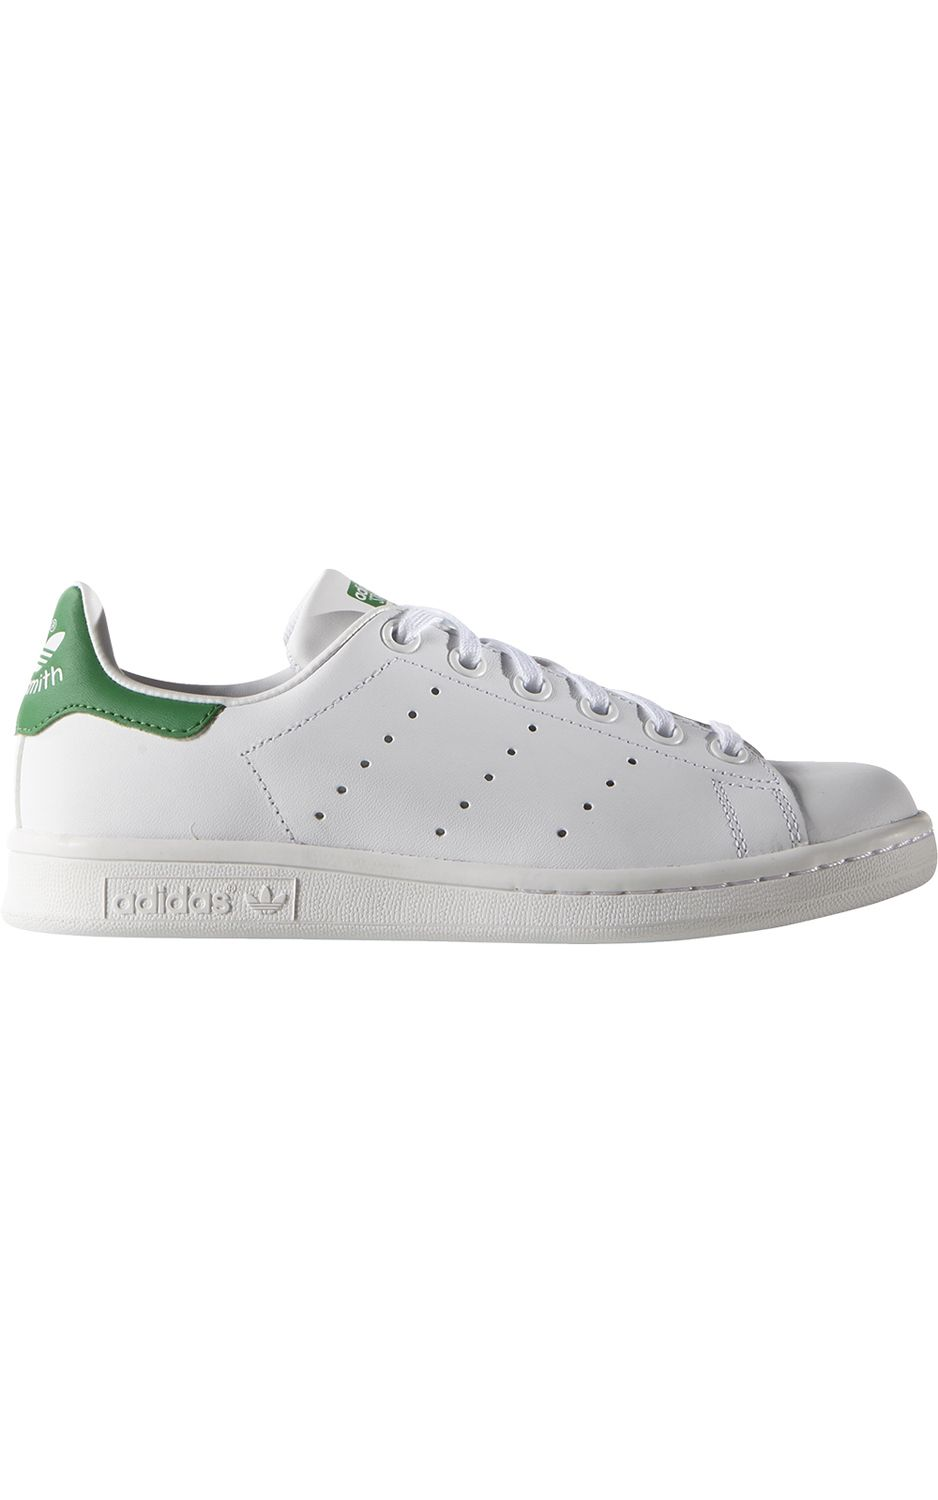 Tenis Adidas STAN SMITH J Ftwr White/Ftwr White/Green